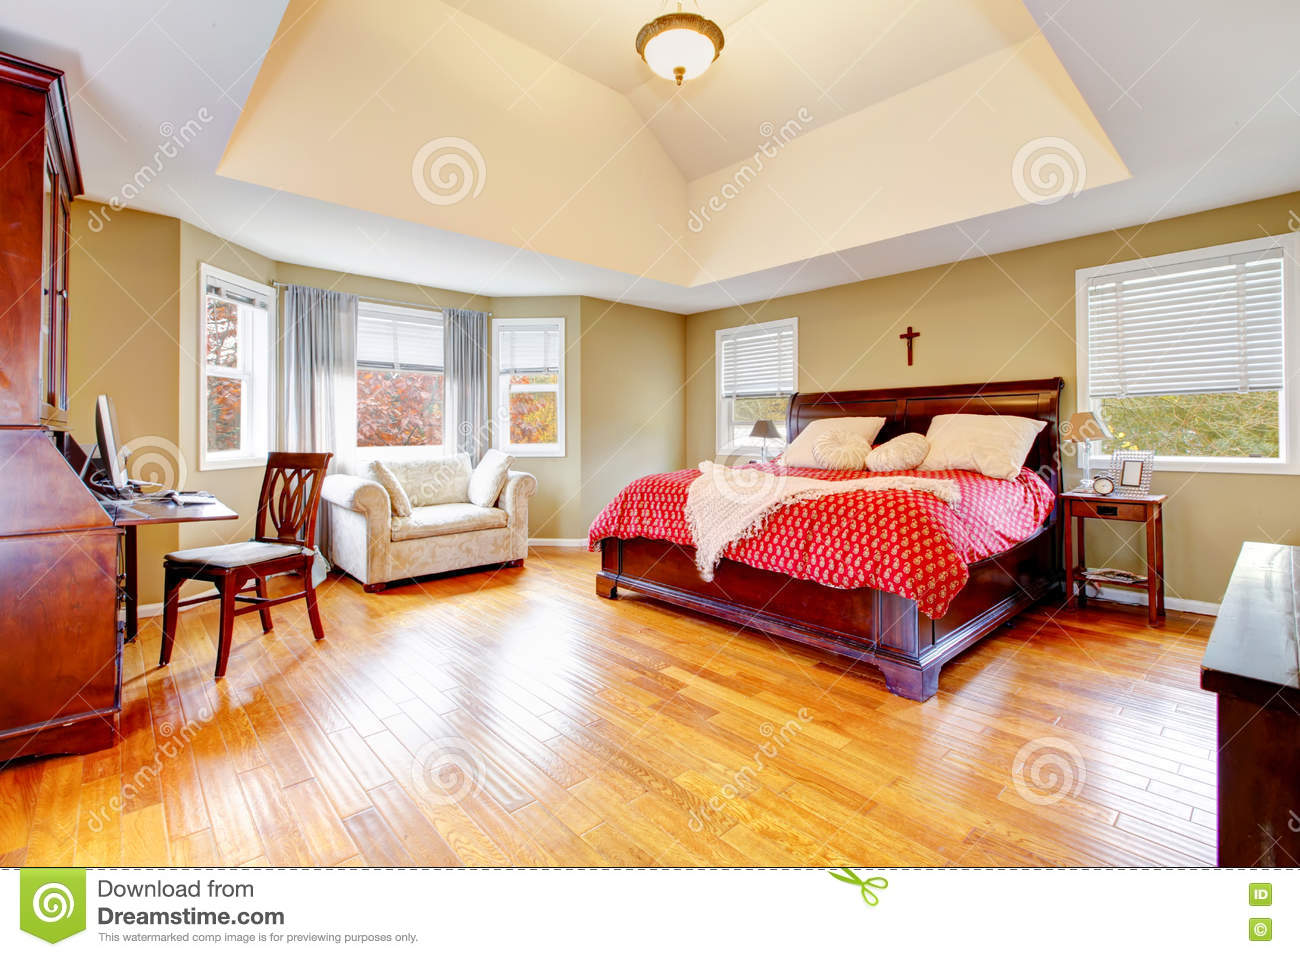 Elegant bedroom with cherrywood furniture set and high ceiling